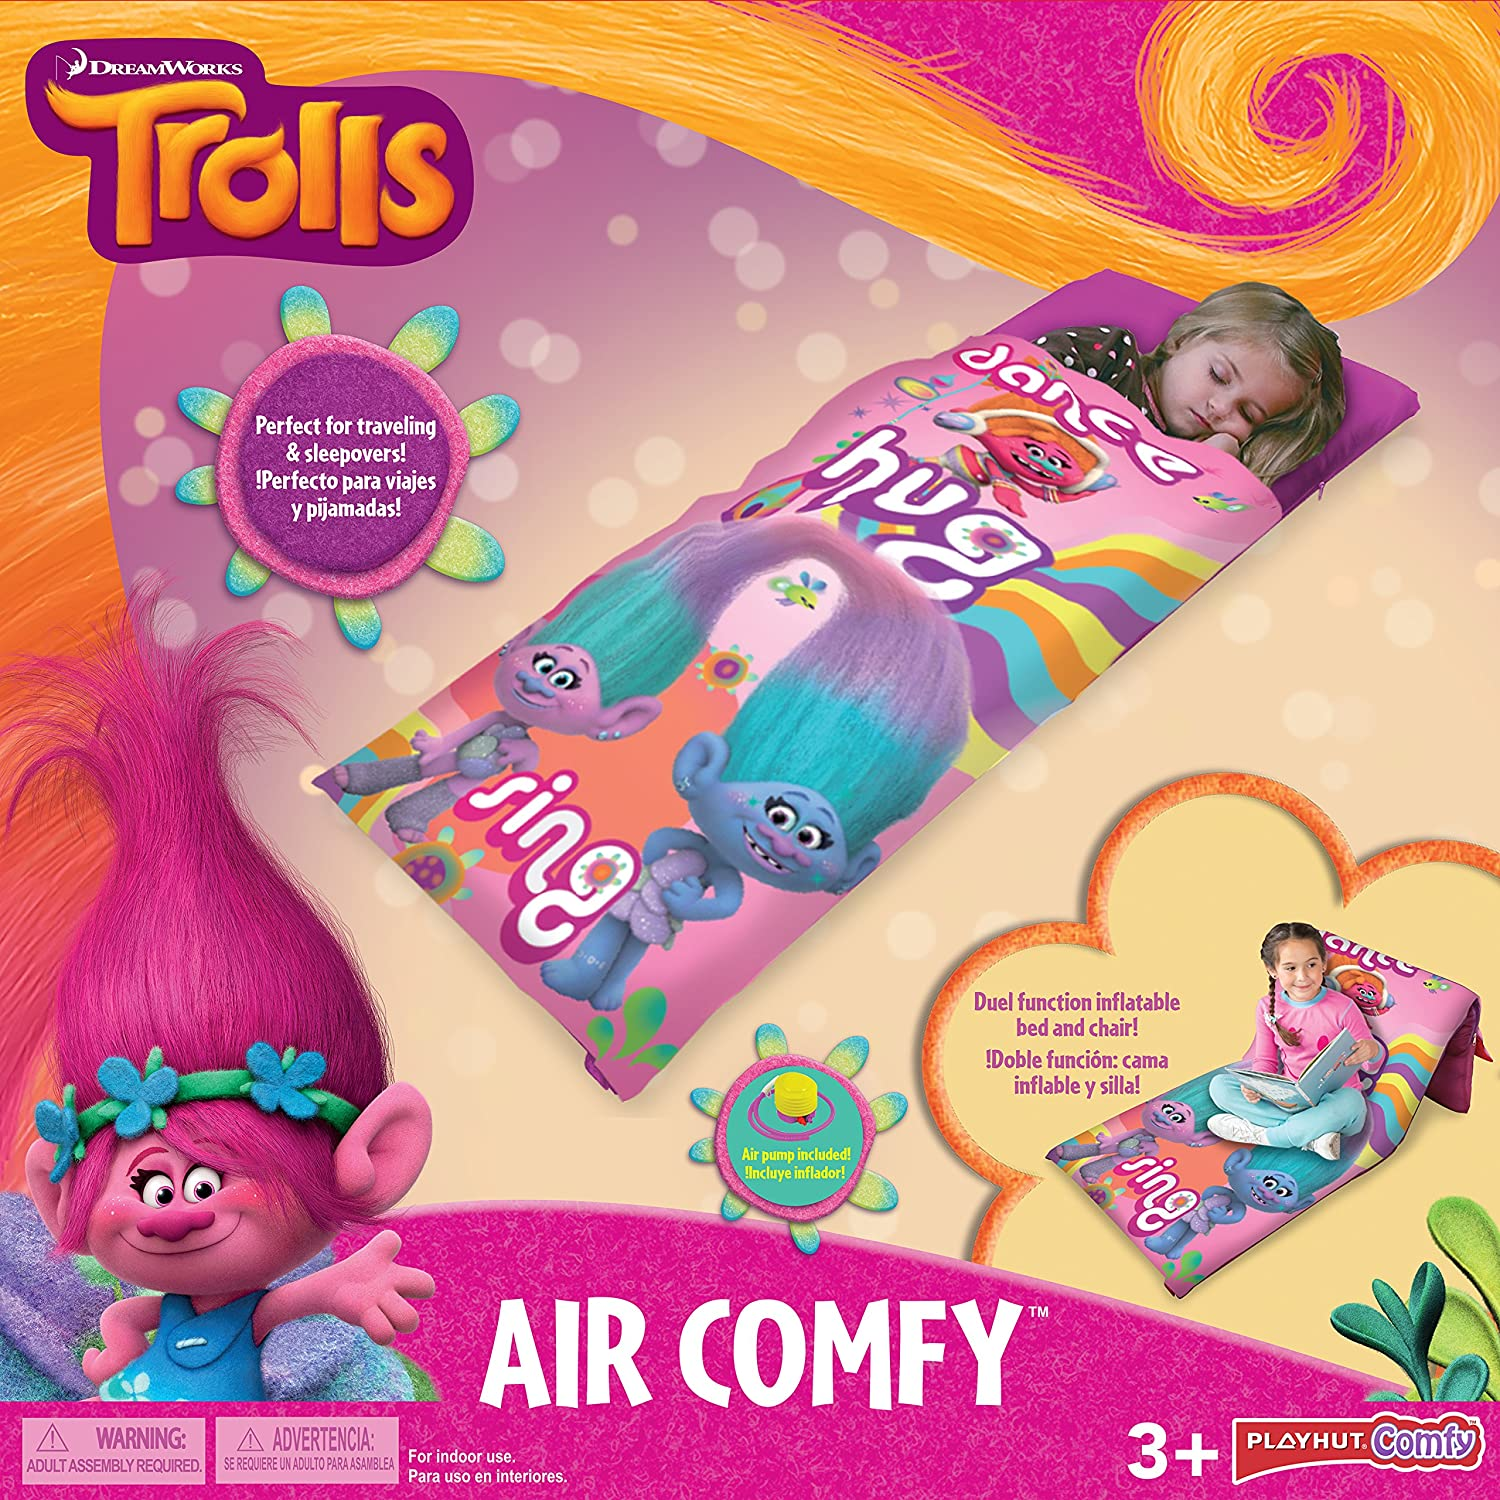 Amazon.com: Playhut DreamWorks Trolls Air Comfy Inflatable Slumber Bed Sleeping Bag: Toys & Games